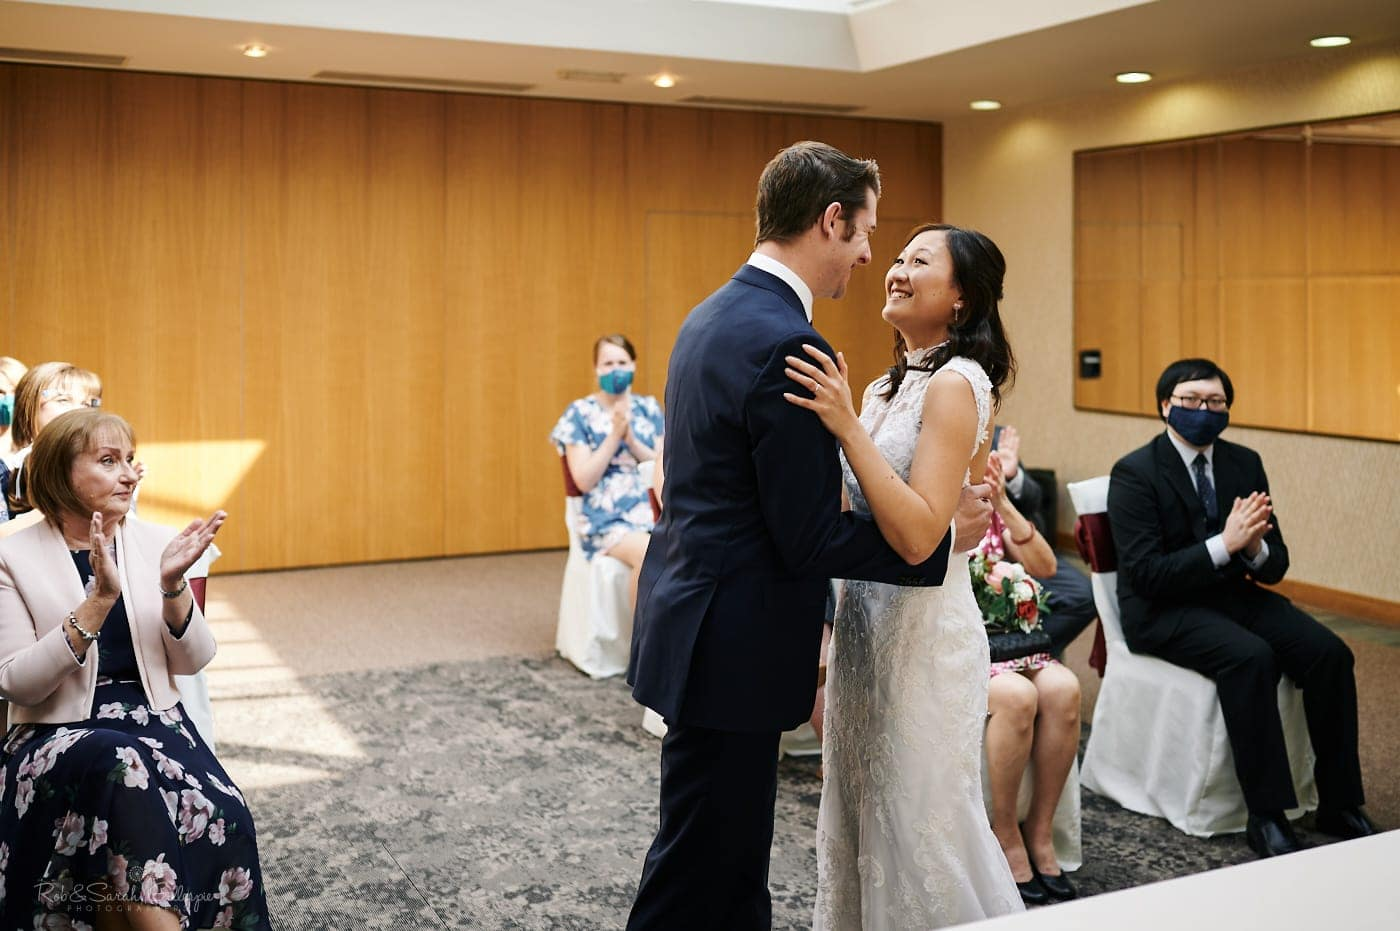 Bride and groom smiling after first kiss during ceremony